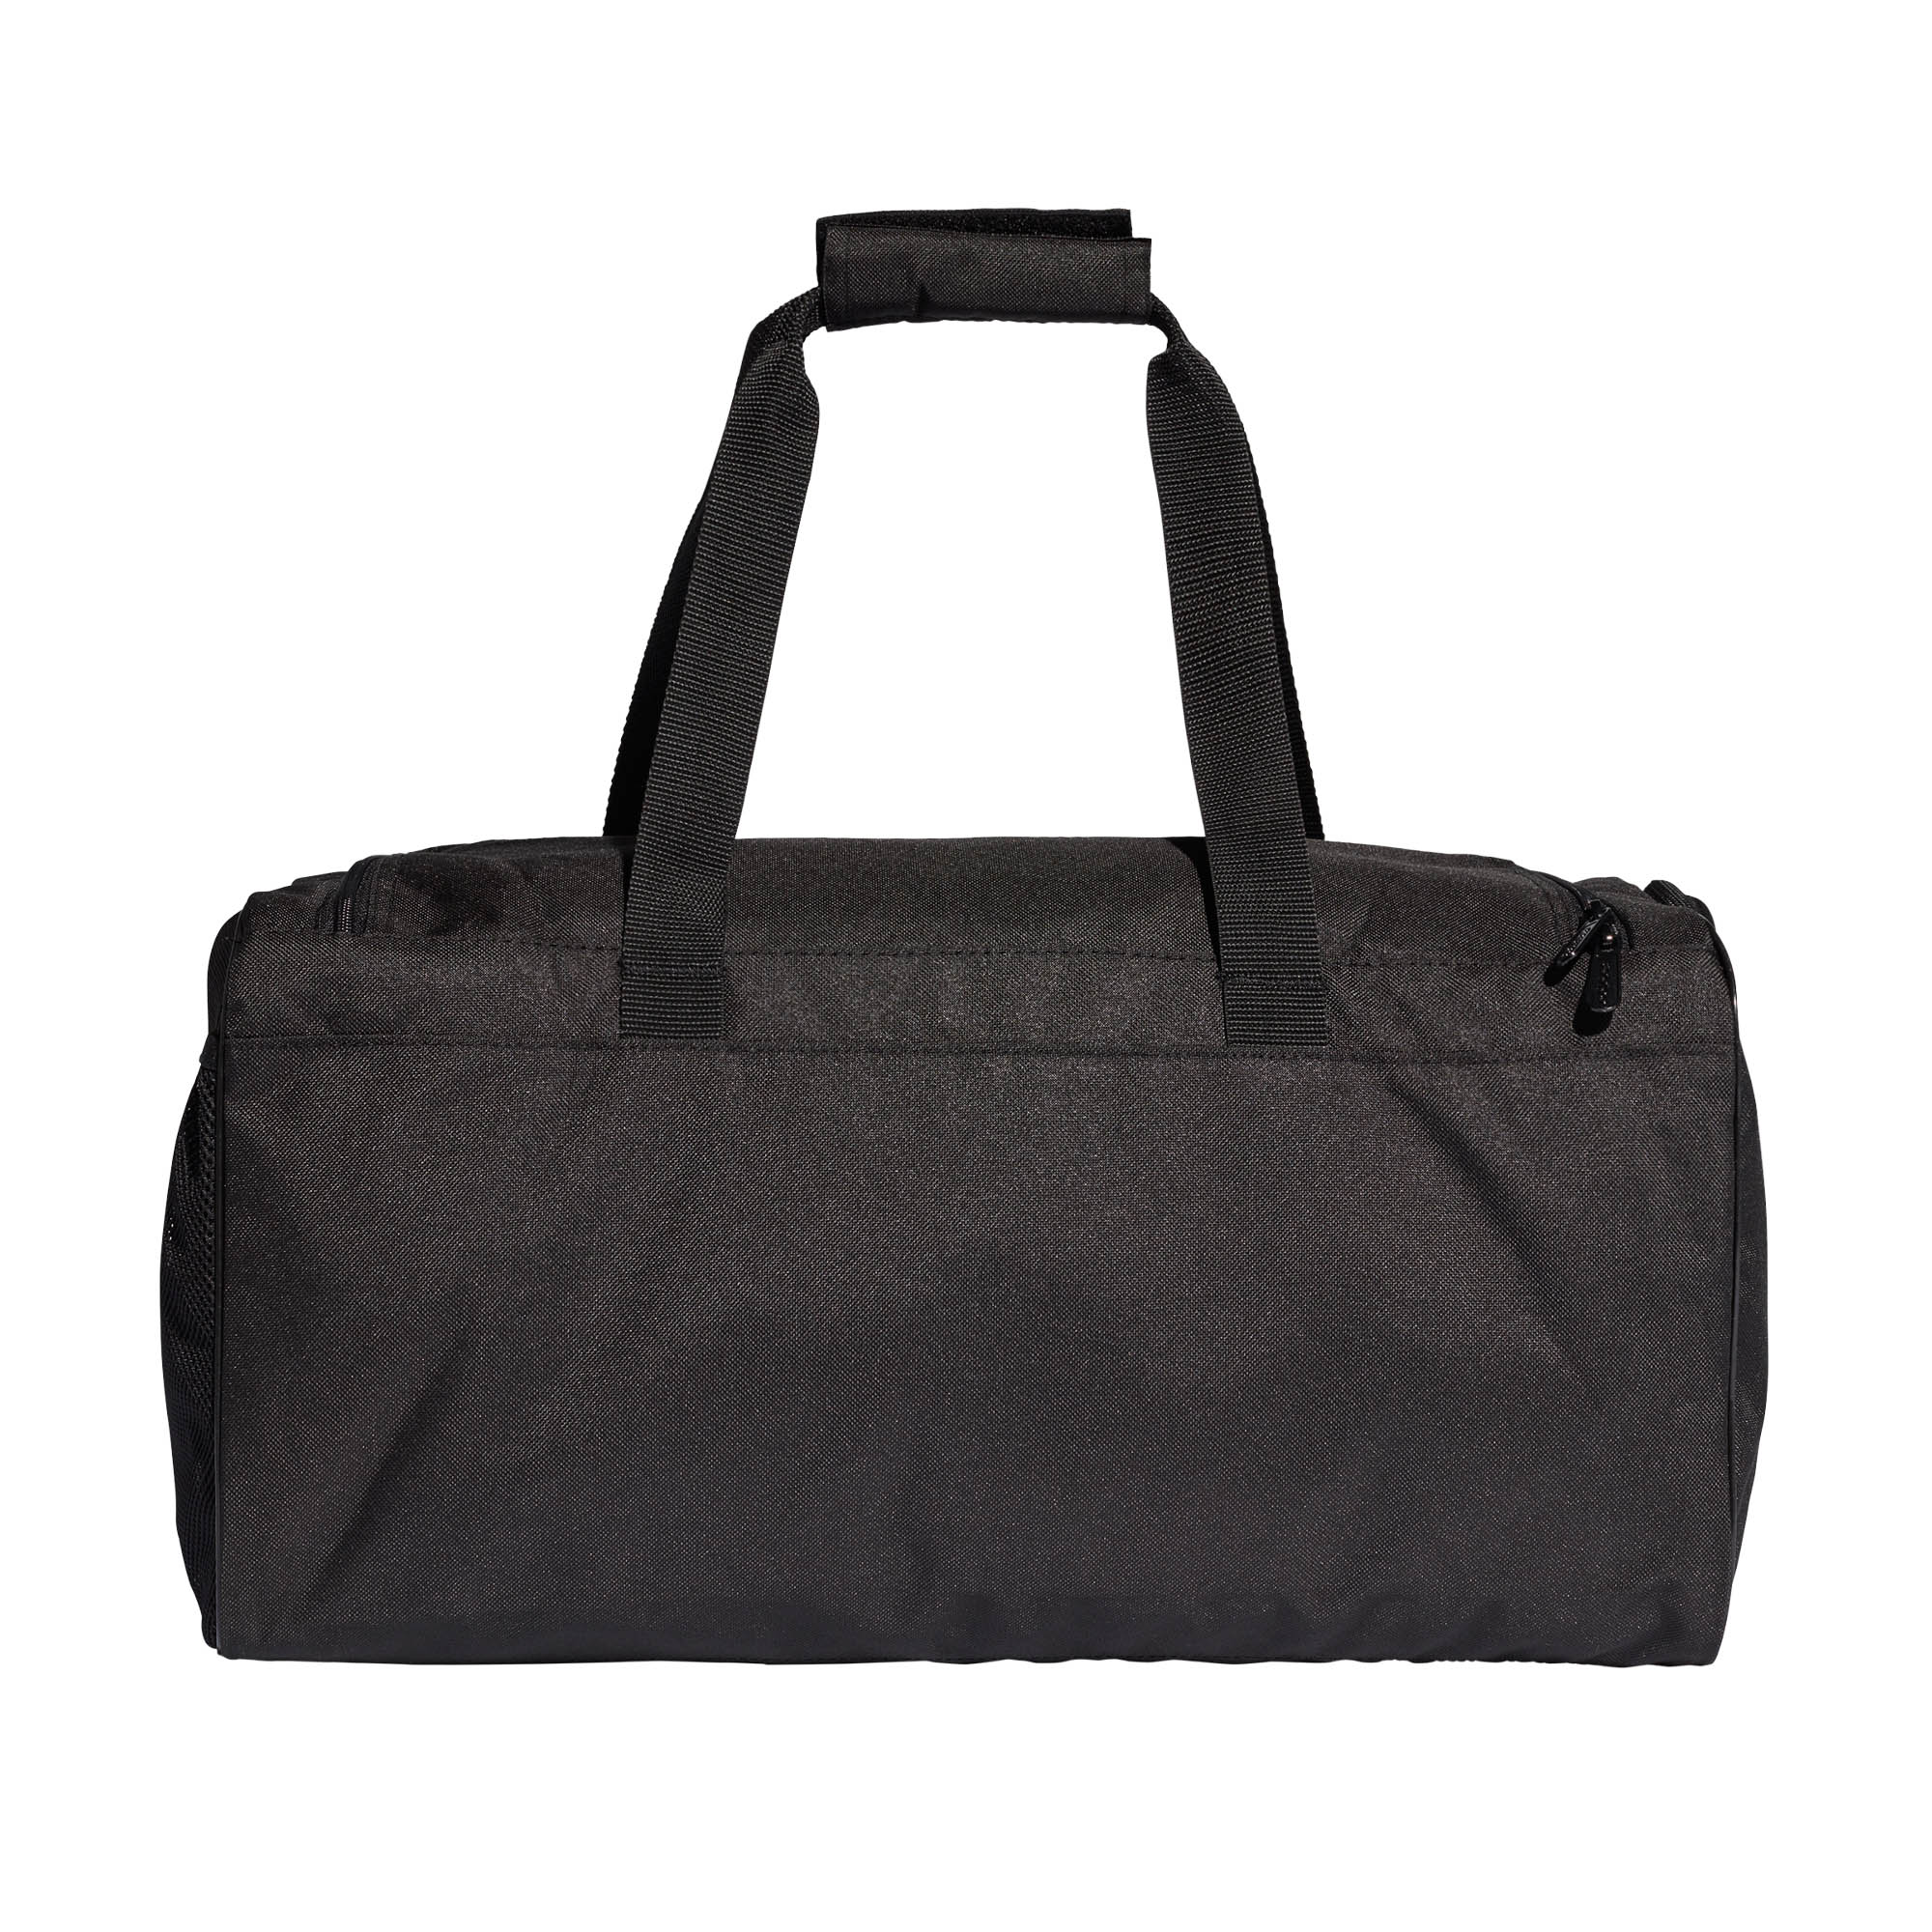 Details about adidas Linear Core Team Sports Gym Duffel Holdall Bag Small  Black White 1a242dc3ce